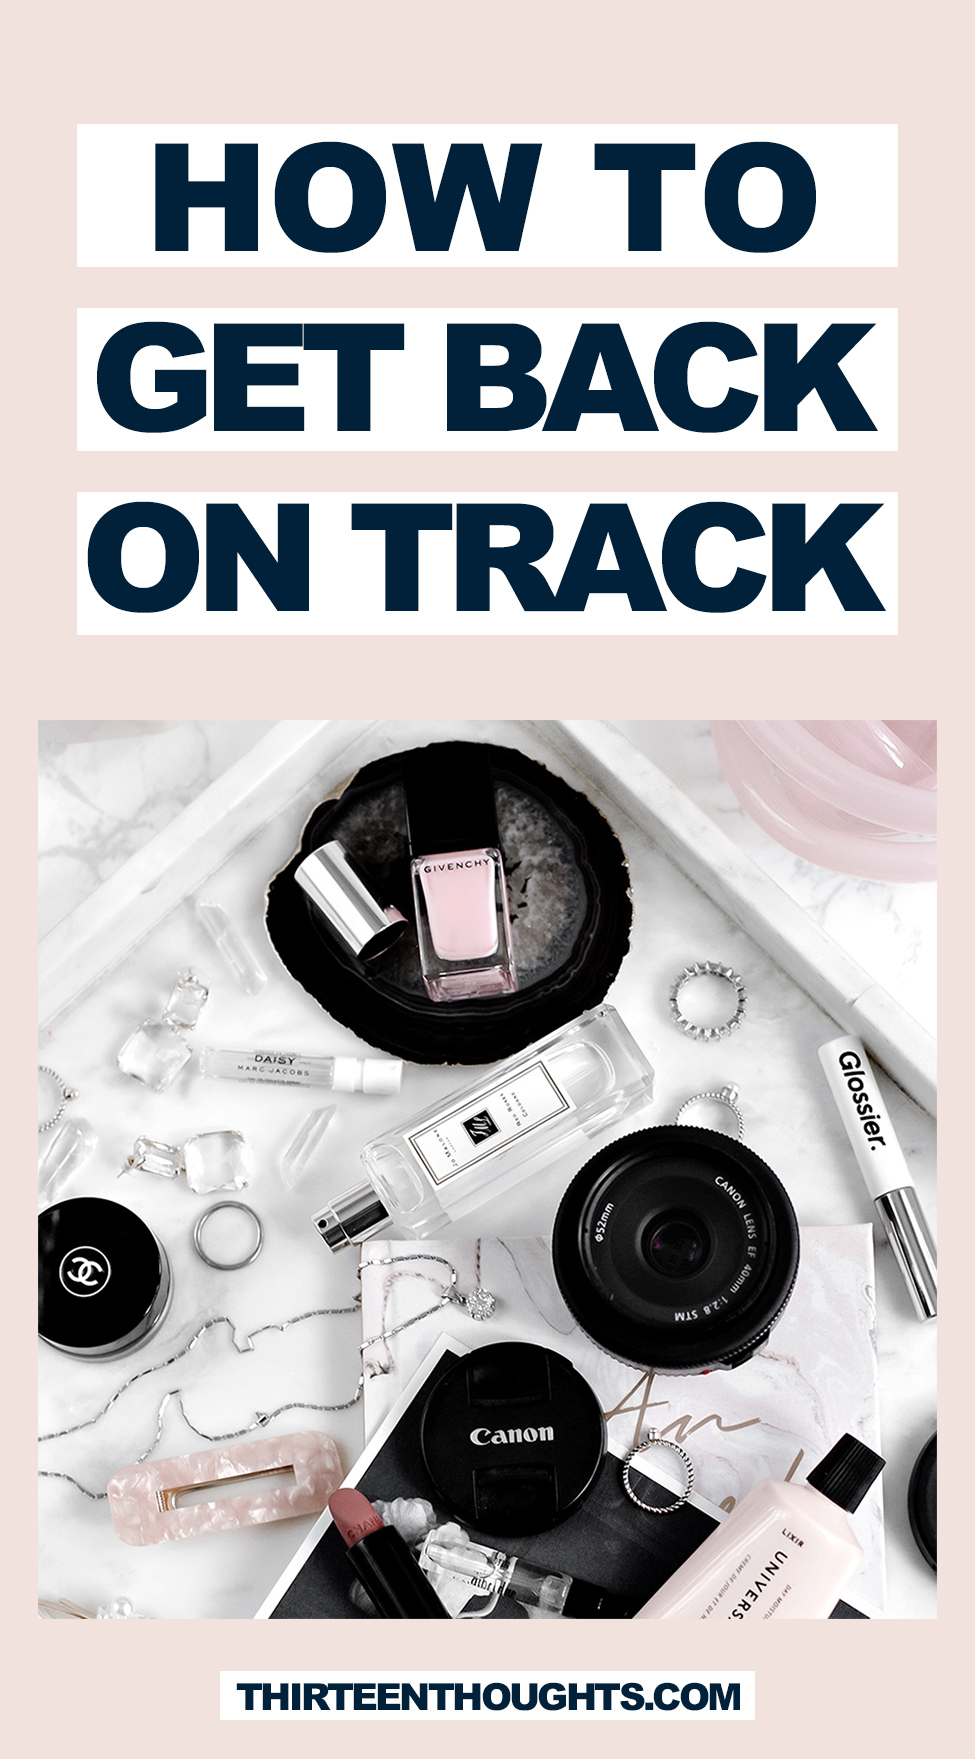 How to Get Back On Track